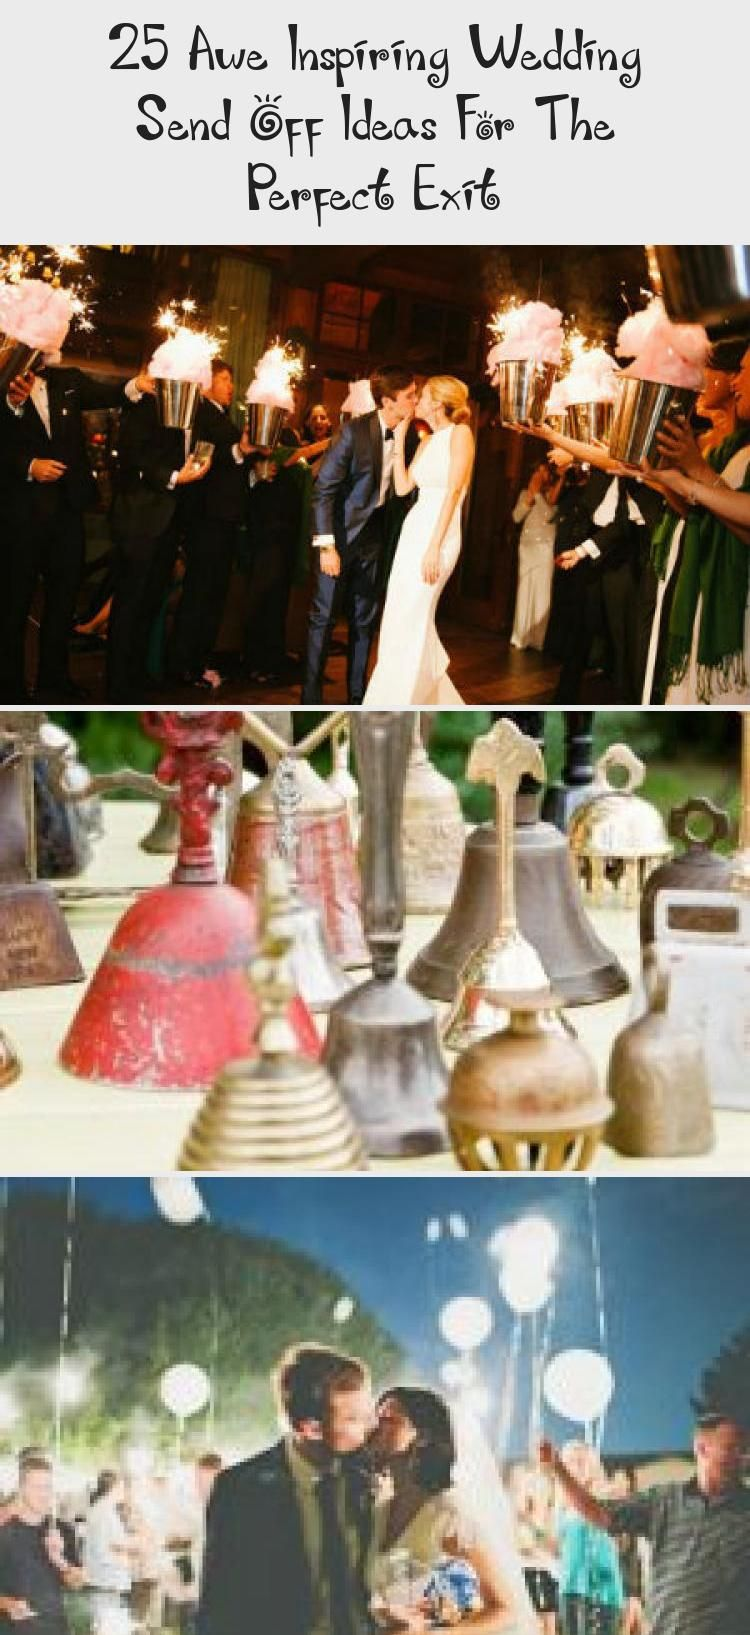 25 Awe Inspiring Wedding Send Off Ideas For The Perfect